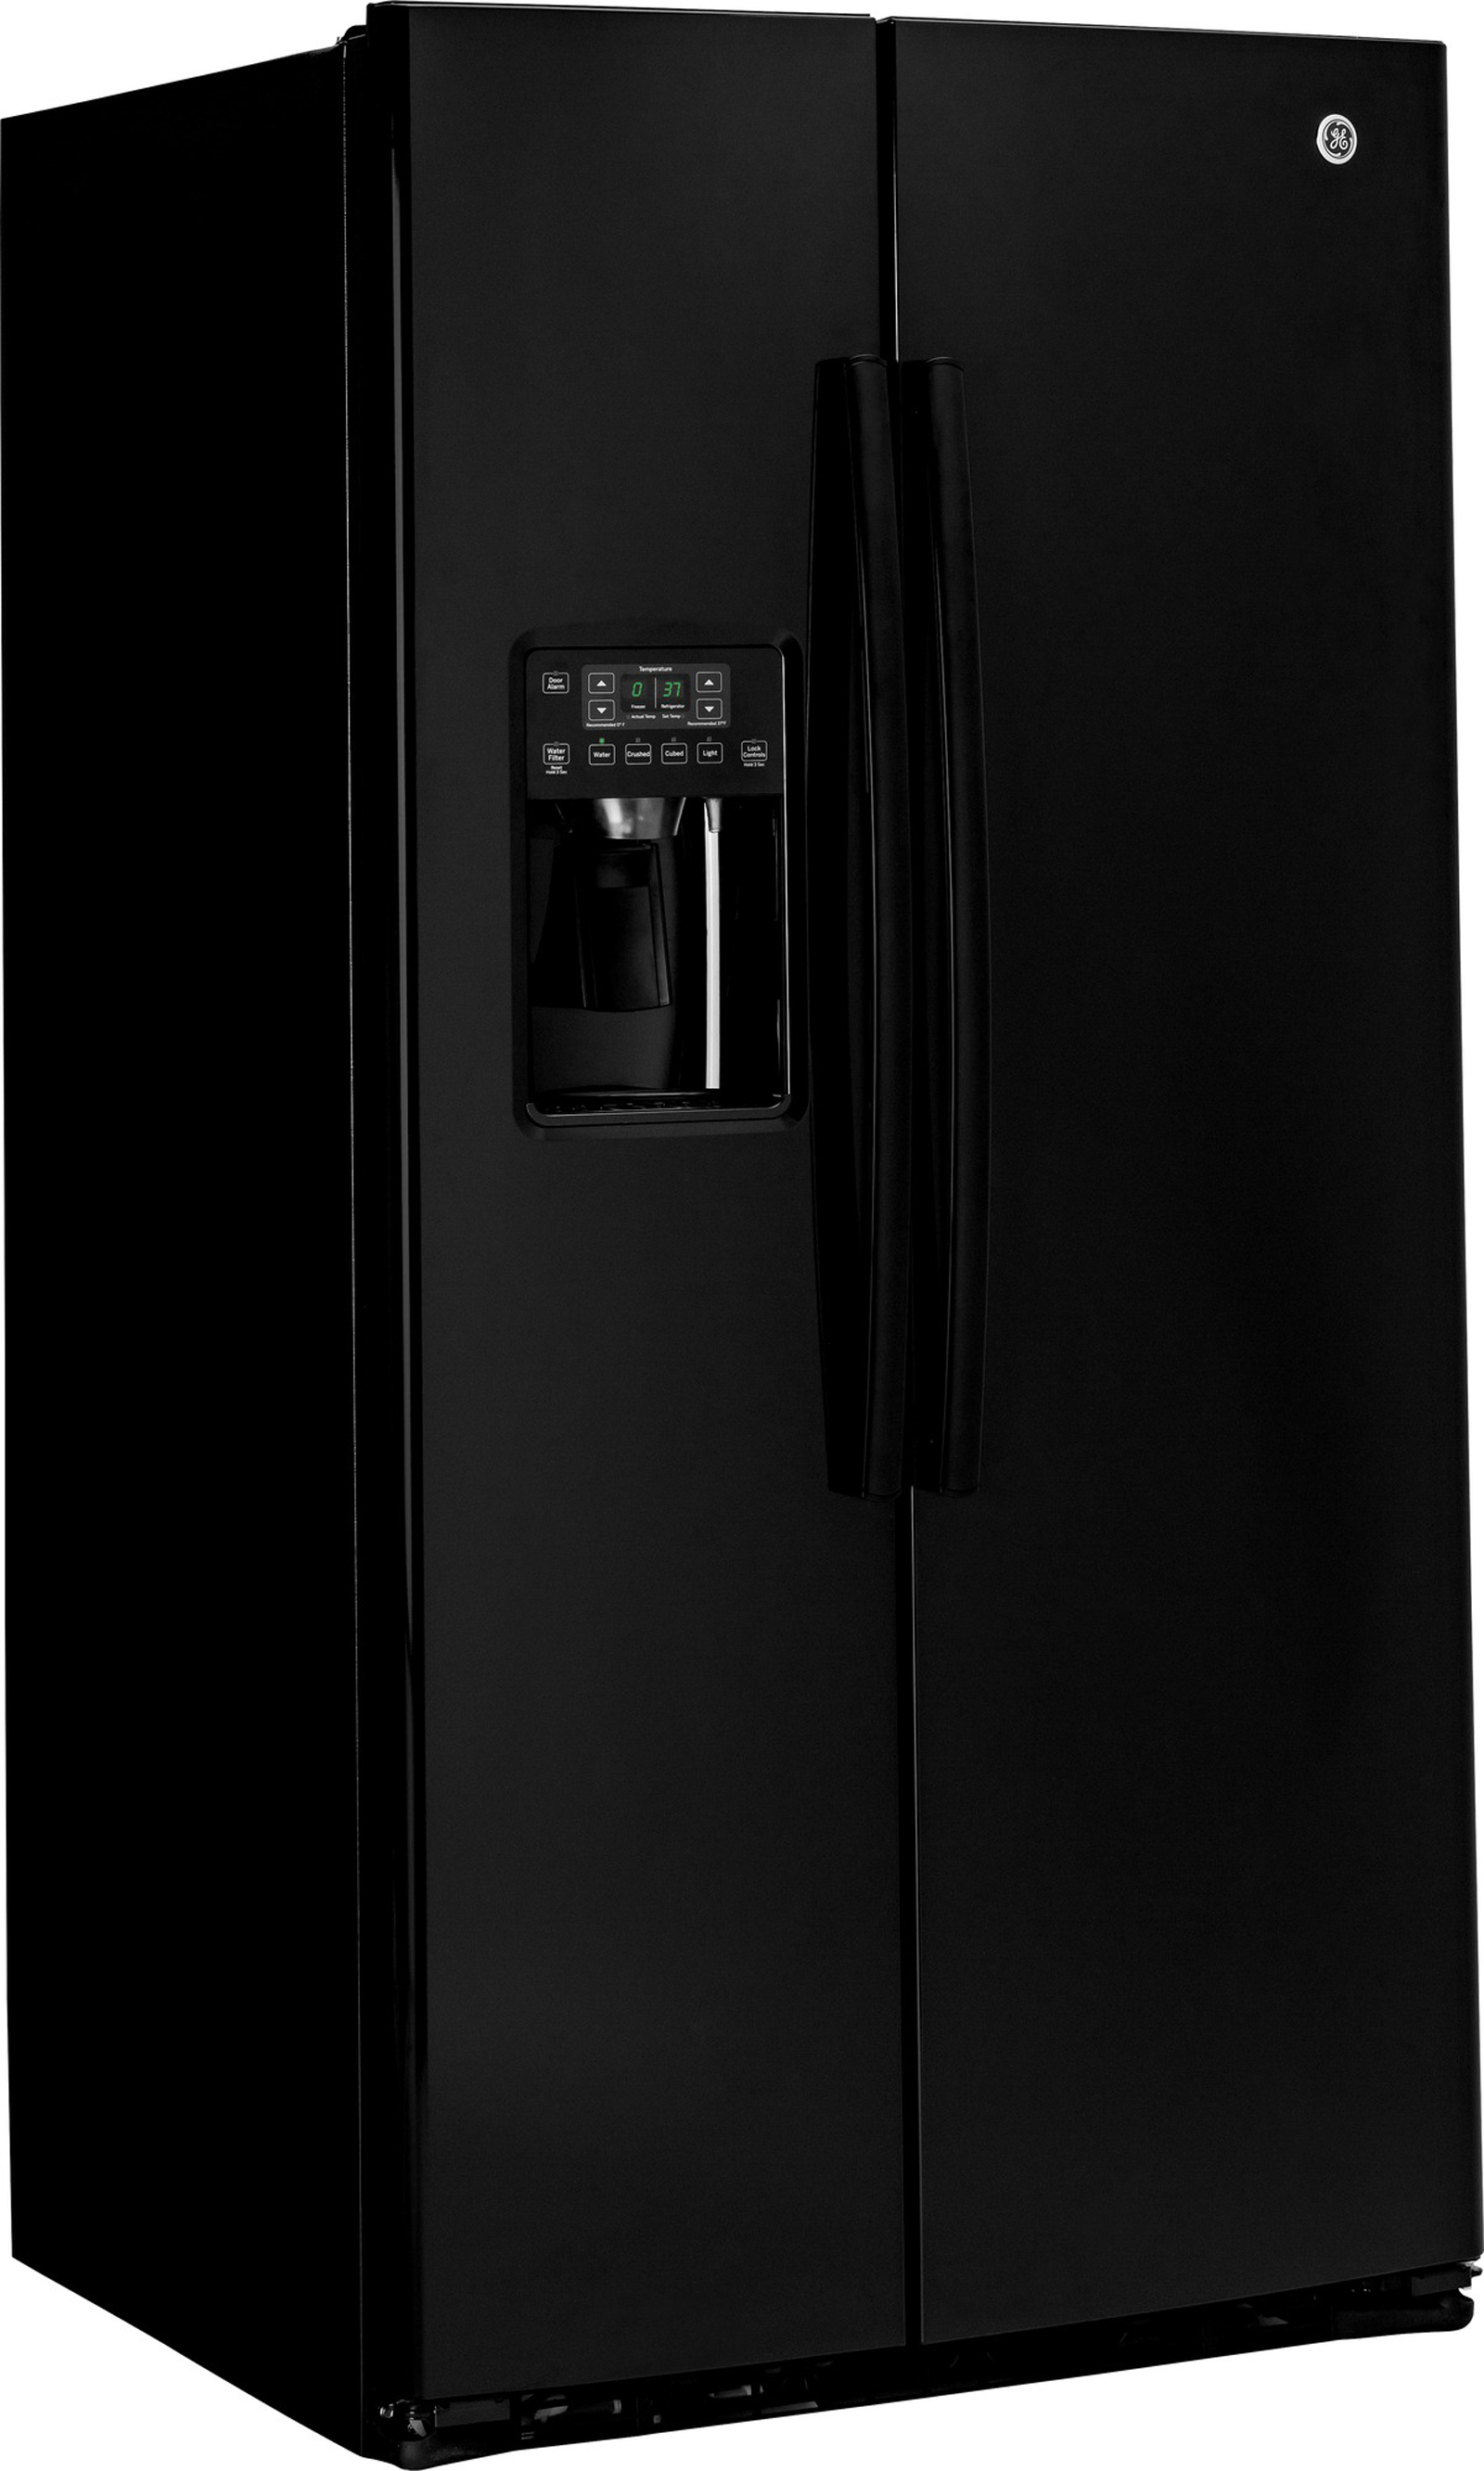 GE Appliances GSE25HGHBB 25.4 cu. ft. Side-By-Side Refrigerator -  Black